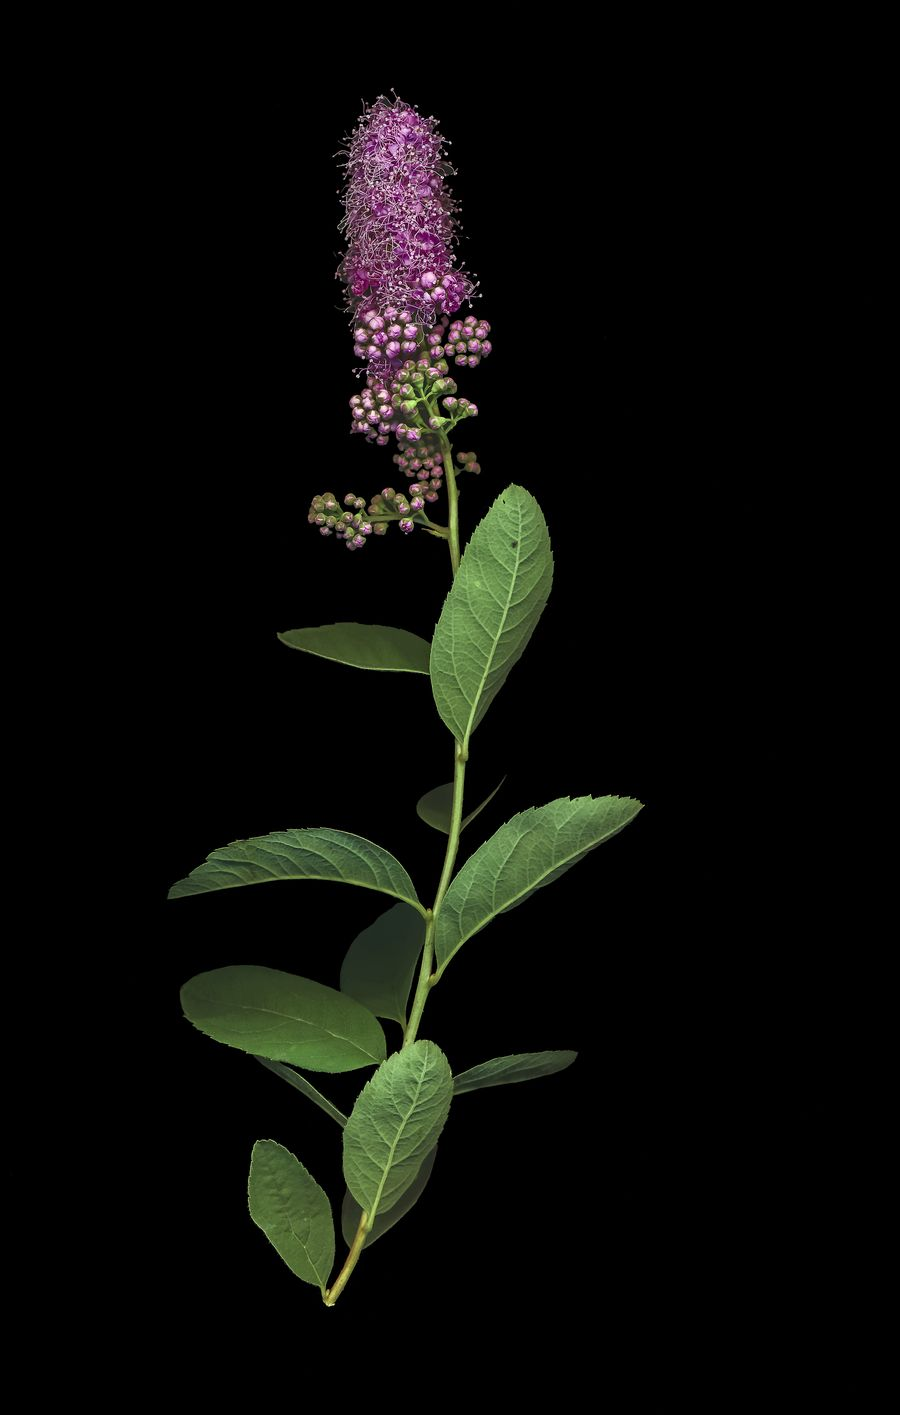 Beauty In Nature Black Background Canoscan 9000f Flower Flowering Plant Green Color Leaf Nature Scanner  Millennial Pink Art Is Everywhere